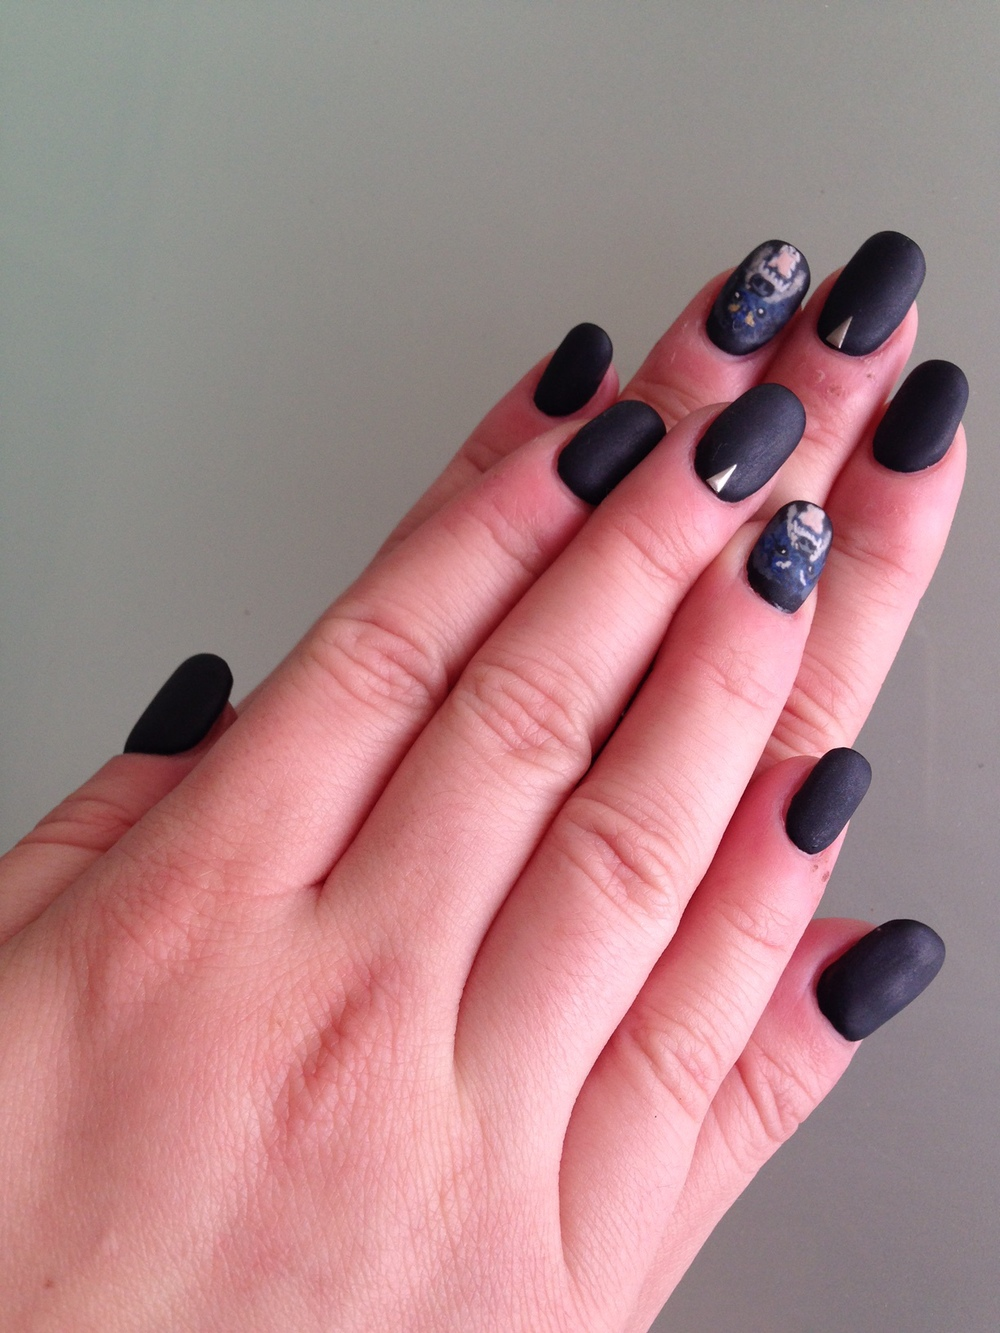 Matte gel manicure shown with Givenchy dog accent nail.